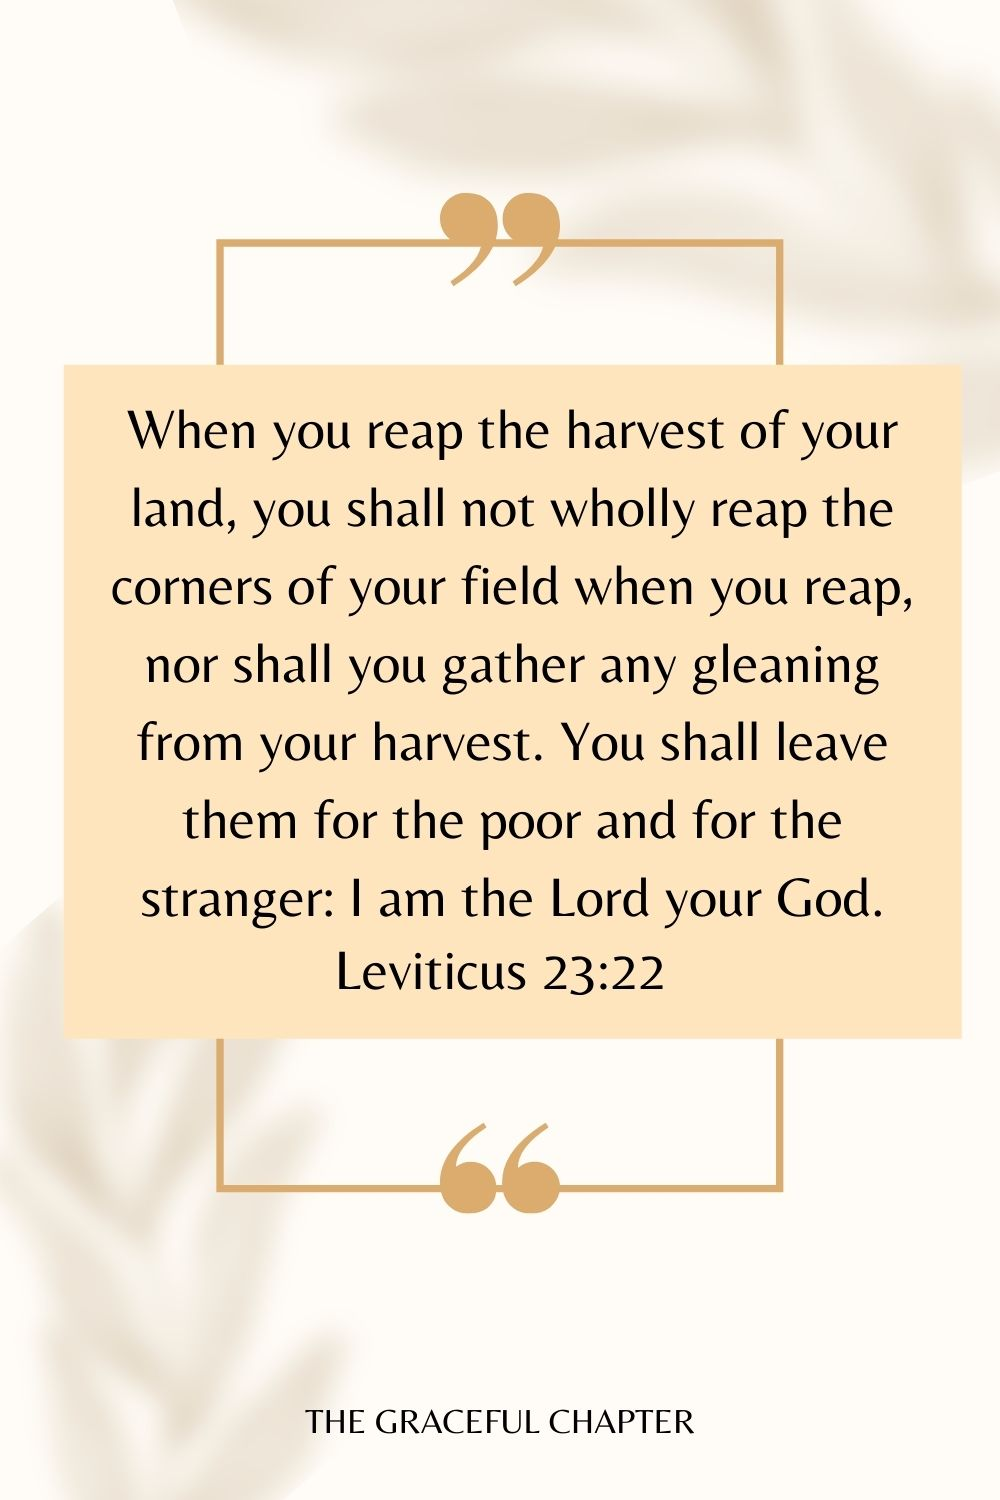 When you reap the harvest of your land, you shall not wholly reap the corners of your field when you reap, nor shall you gather any gleaning from your harvest. You shall leave them for the poor and for the stranger: I am the Lord your God. Leviticus 23:22